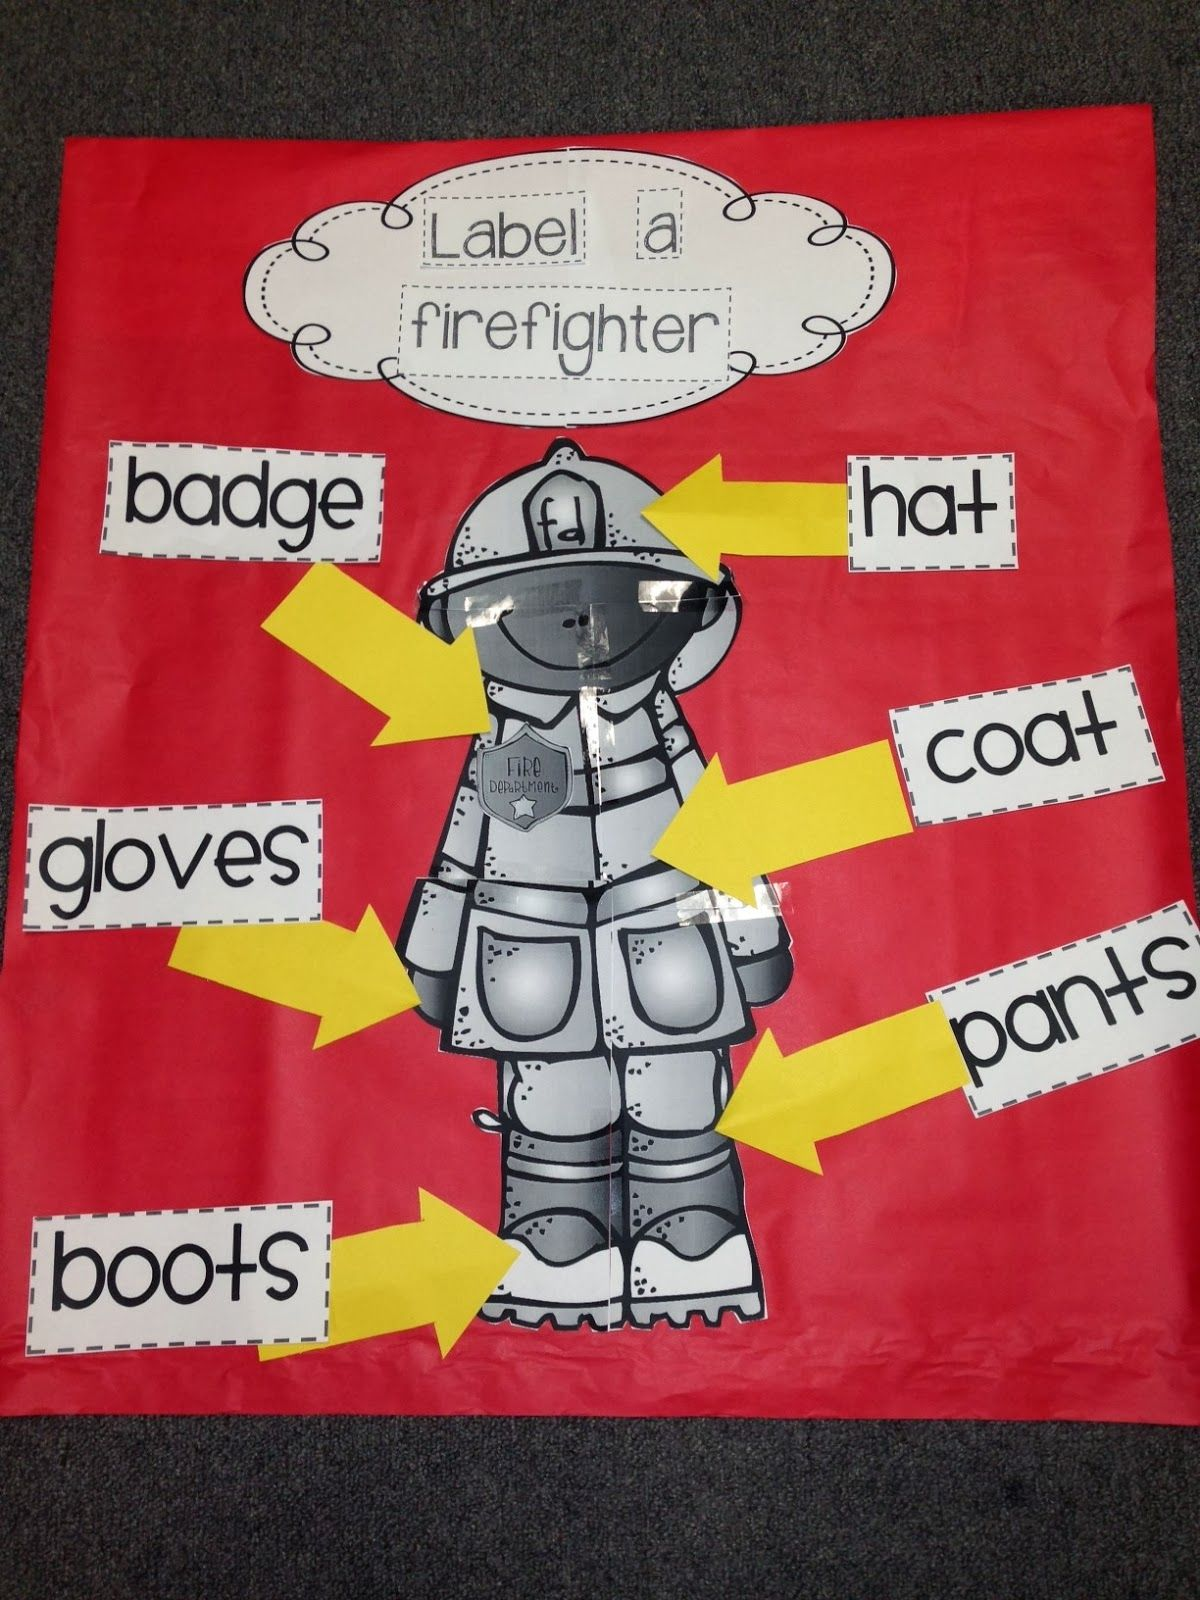 Label A Firefighter Activity From Chalk Talk A